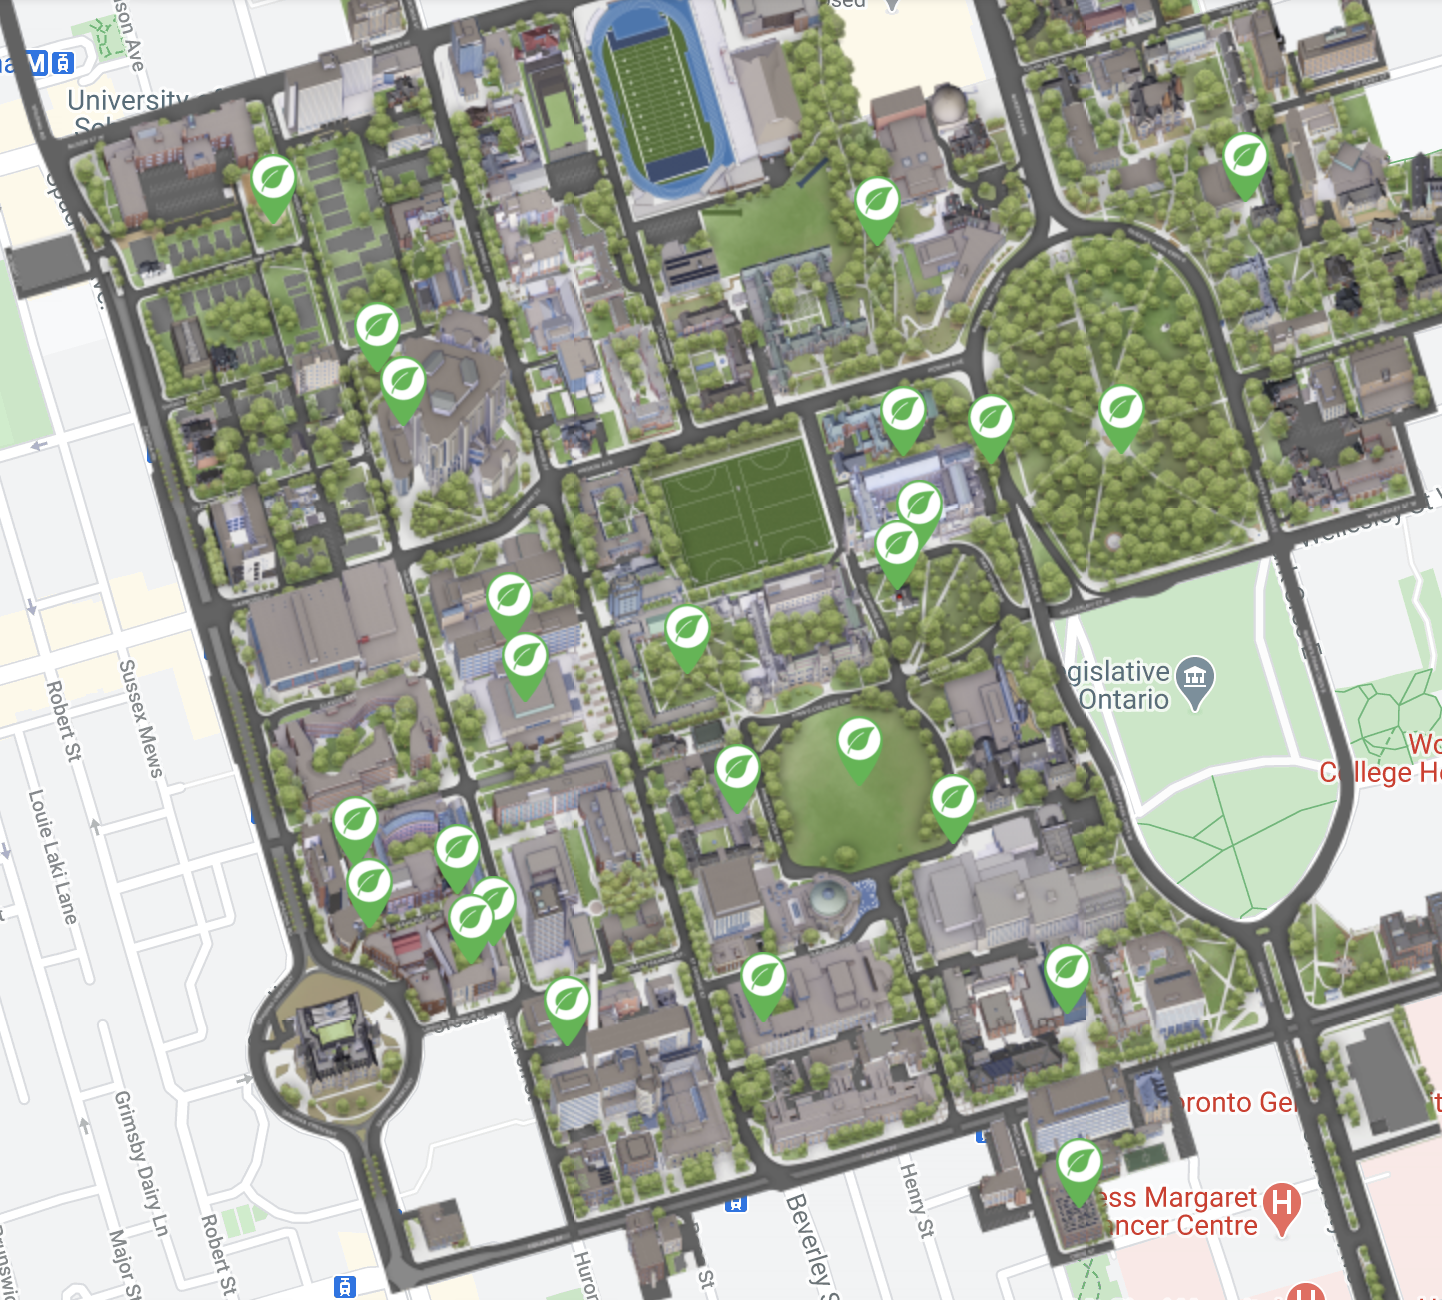 Screen shot of map with green spaces highlighted